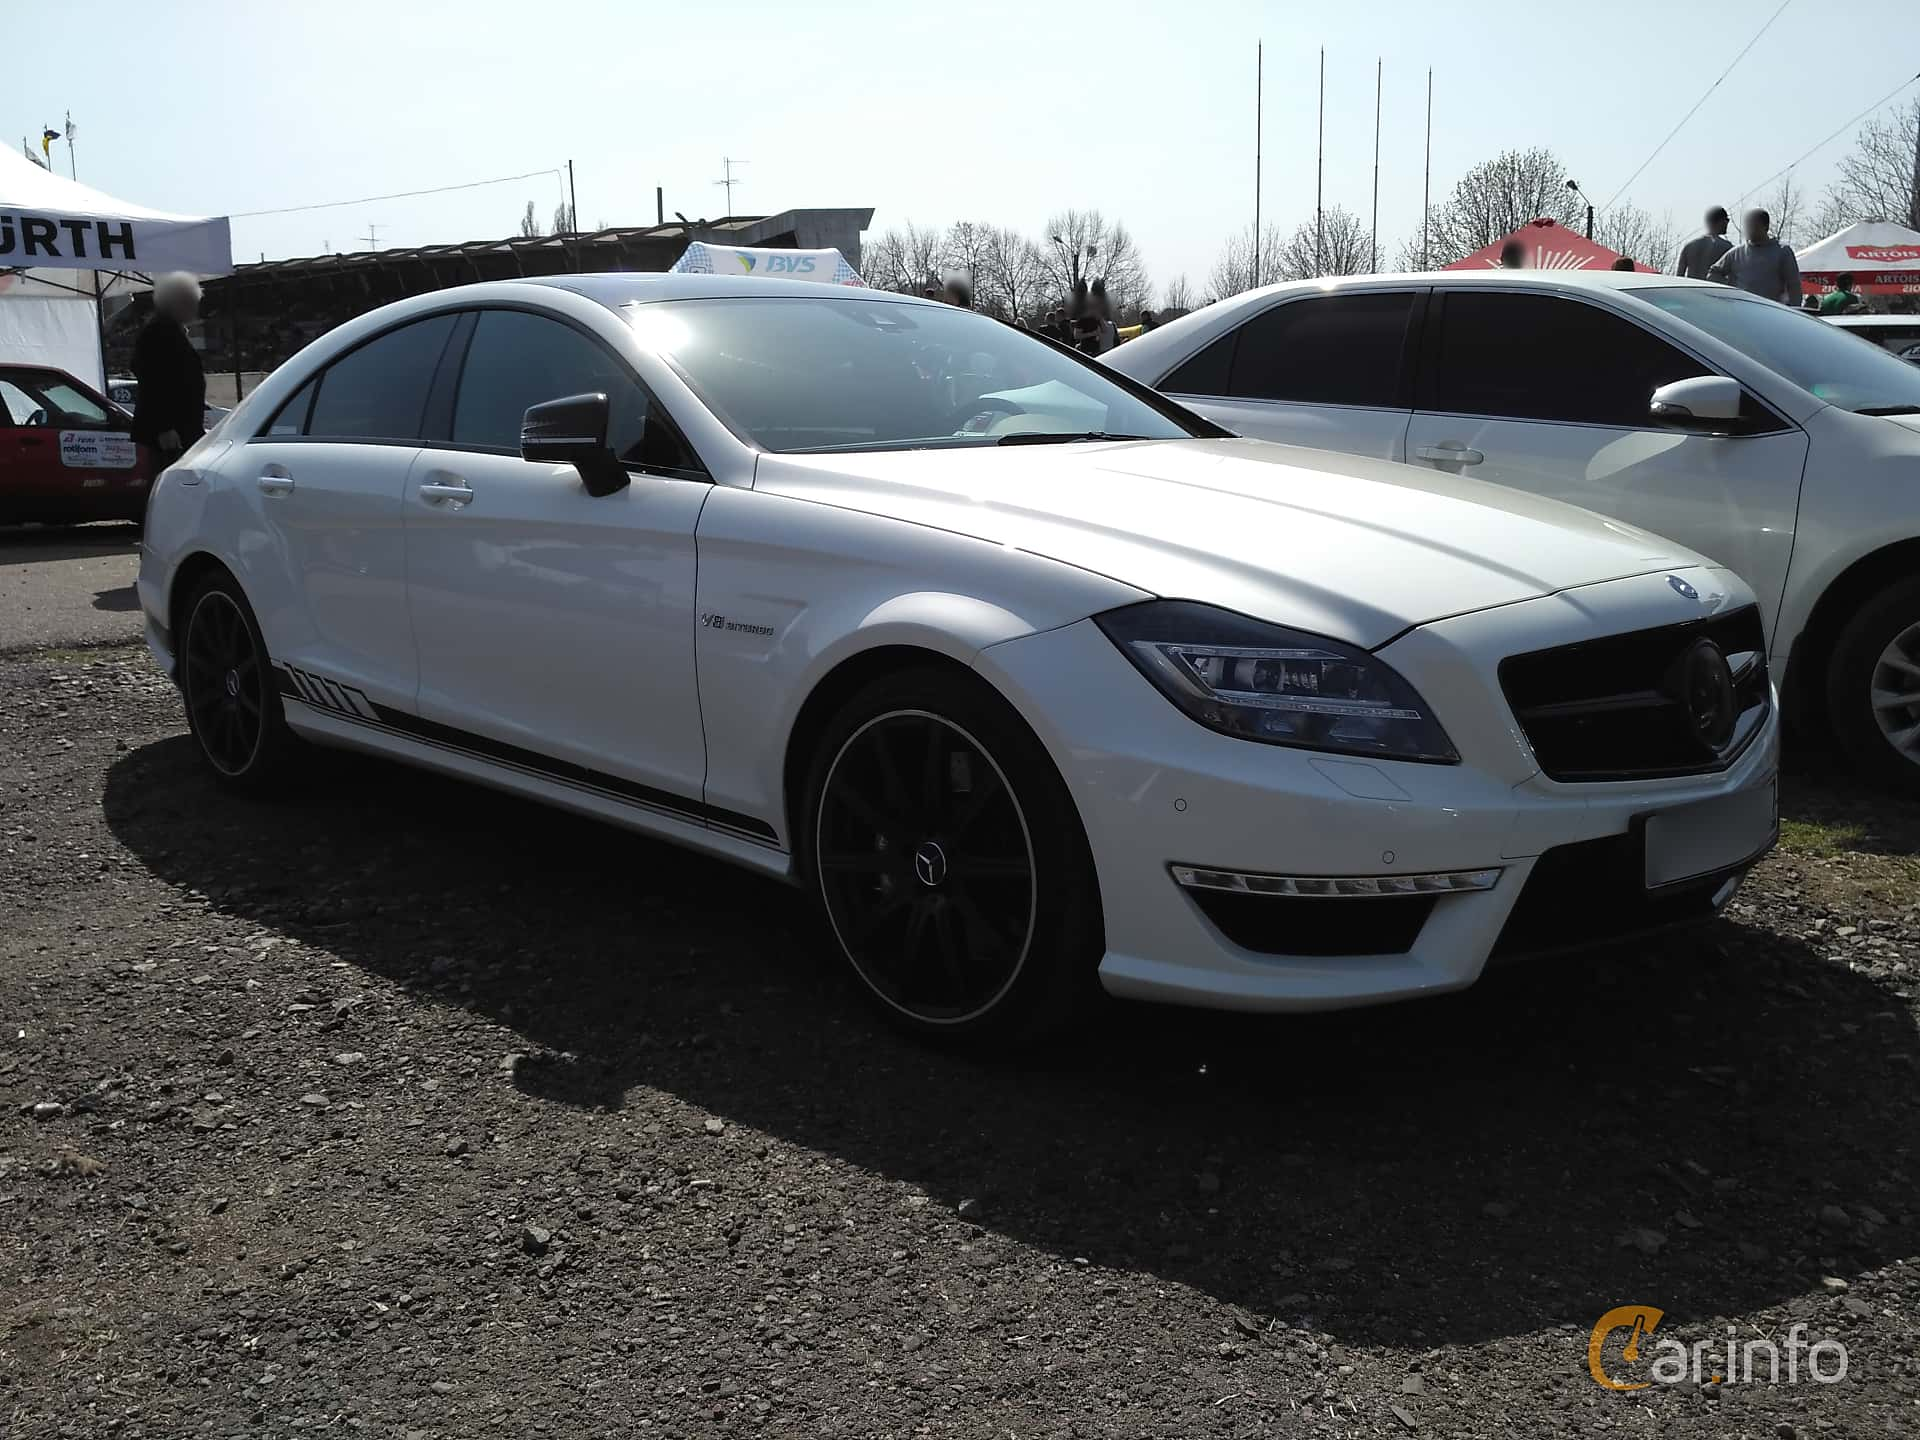 Fram/Sida av Mercedes-Benz CLS 63 AMG S 4MATIC 5.5 V8 4MATIC , 585ps, 2013 på Ltava Time Attack 1st Stage